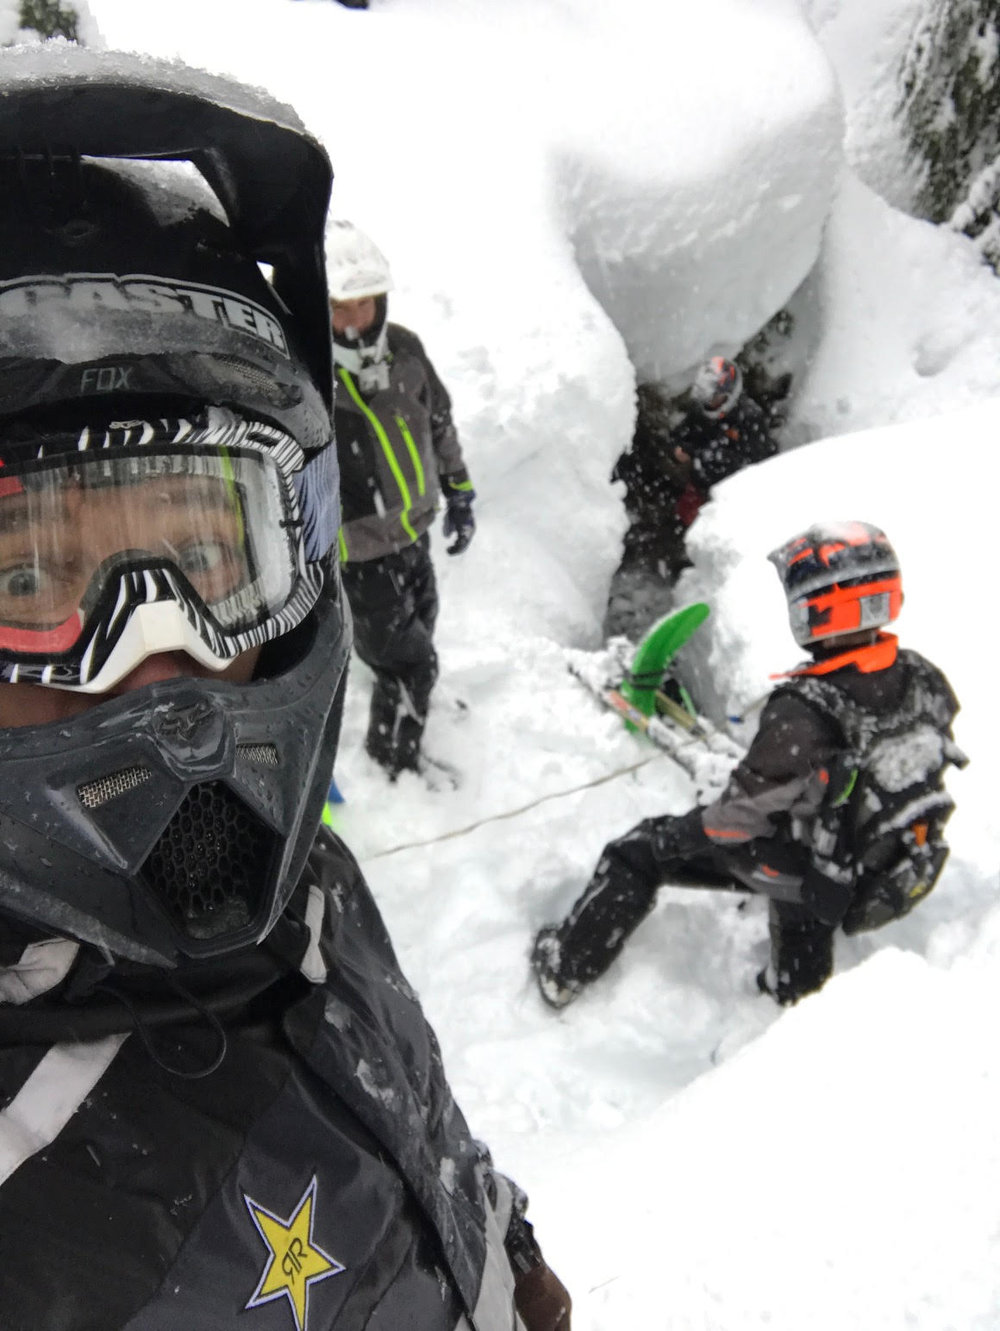 snow biking motothenw